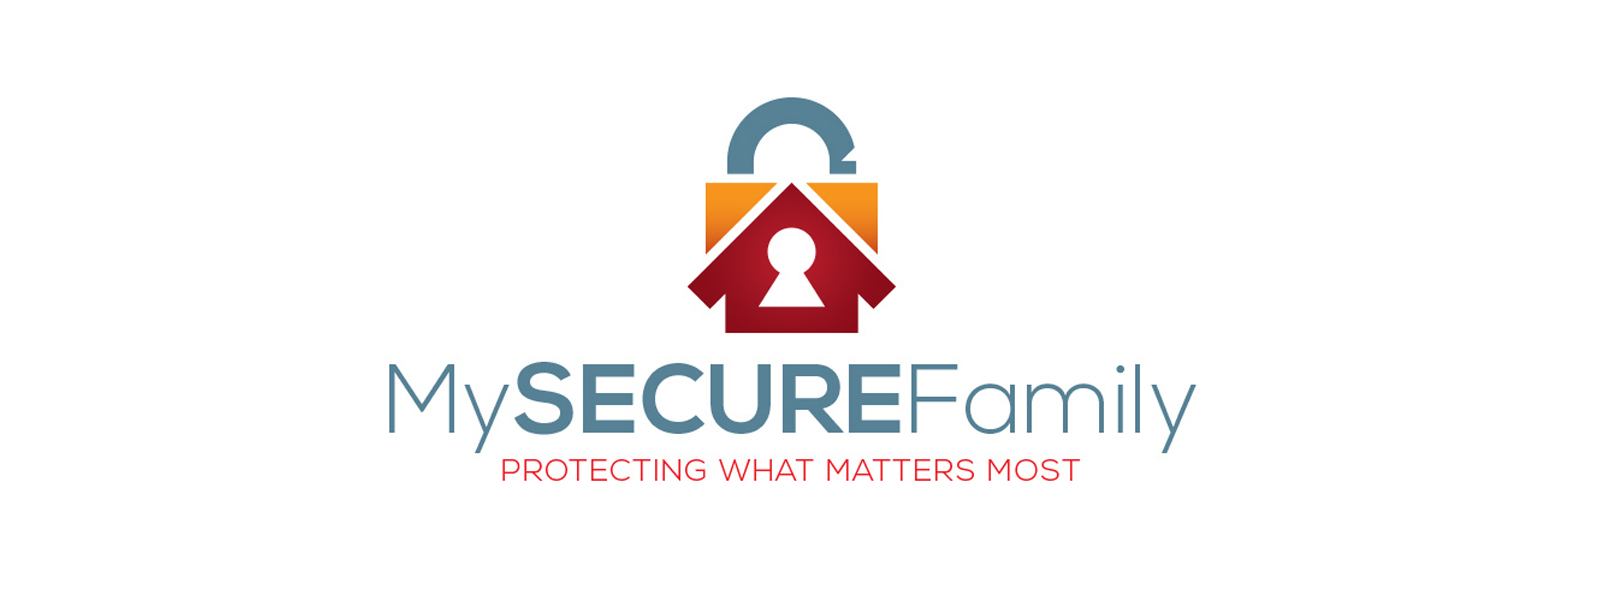 My Secure Family